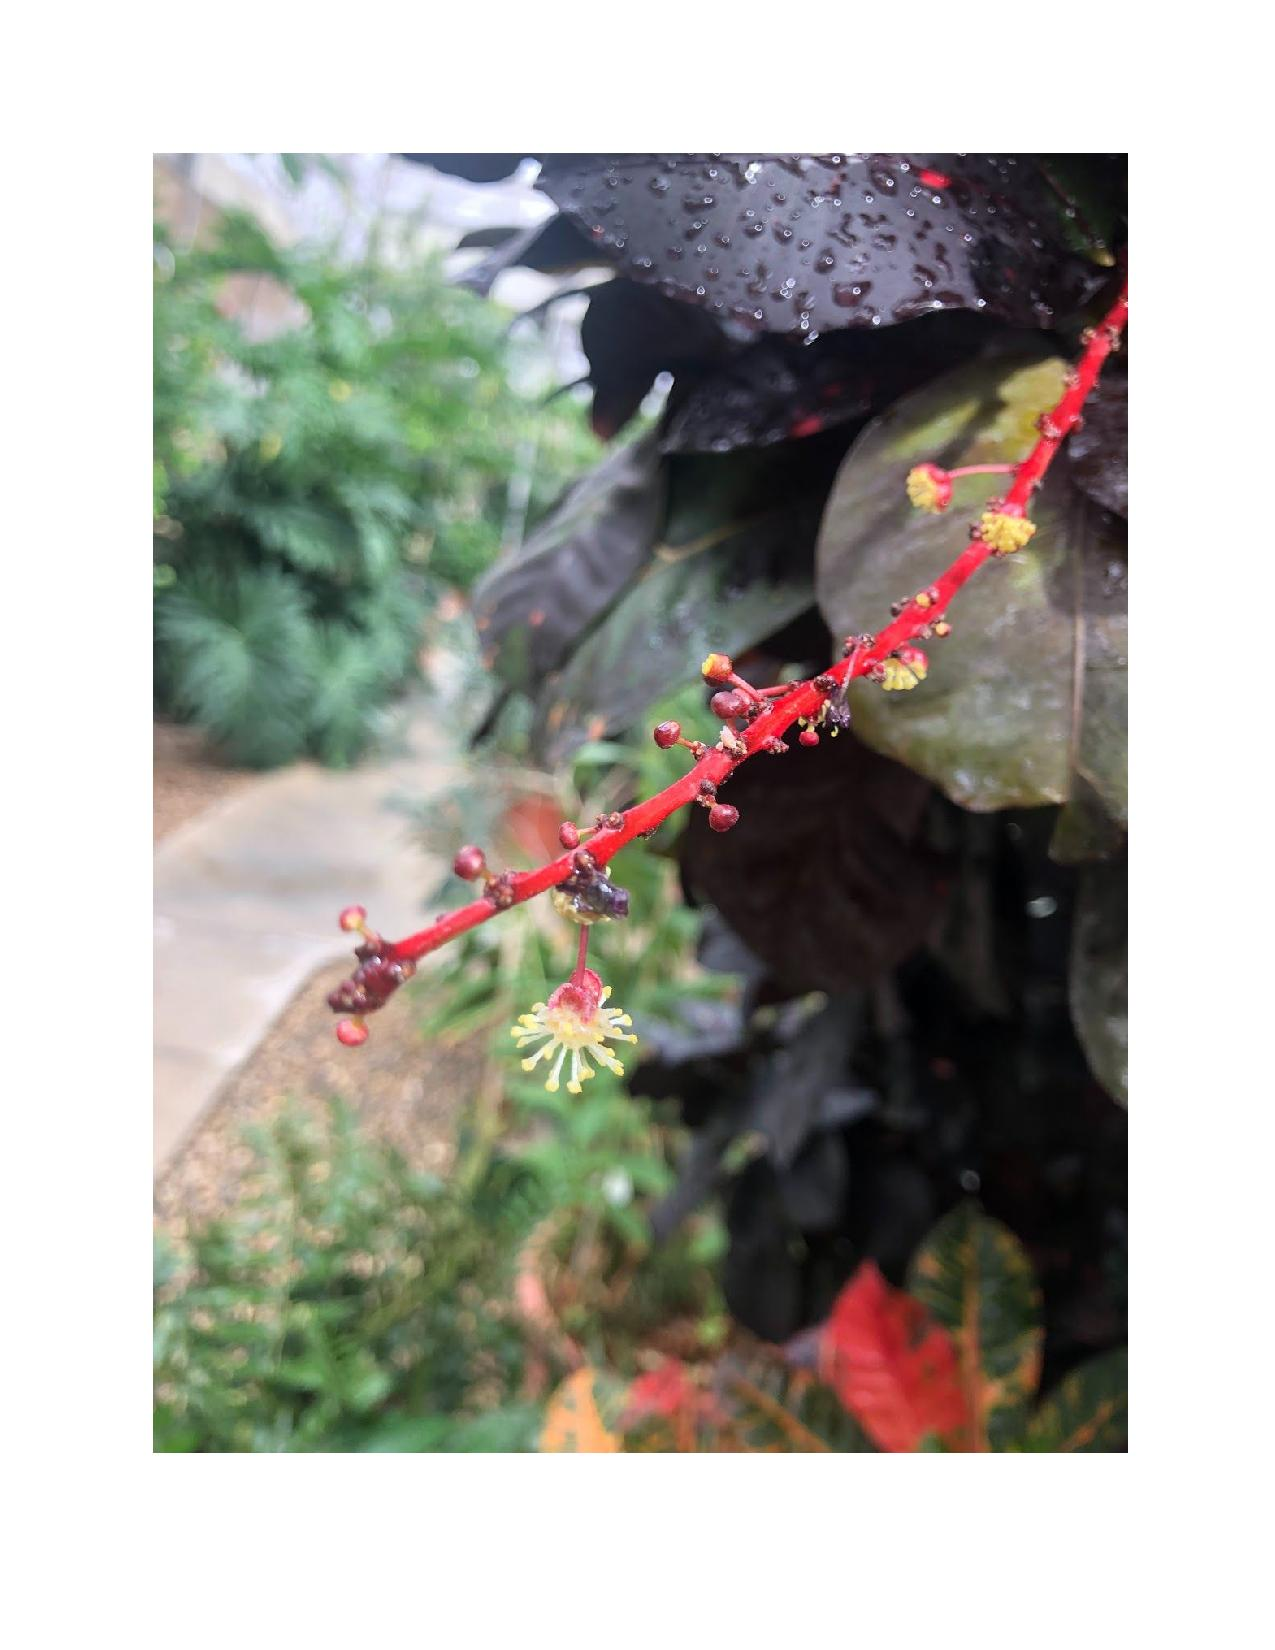 botanical close-up of tiny flowers with red stem